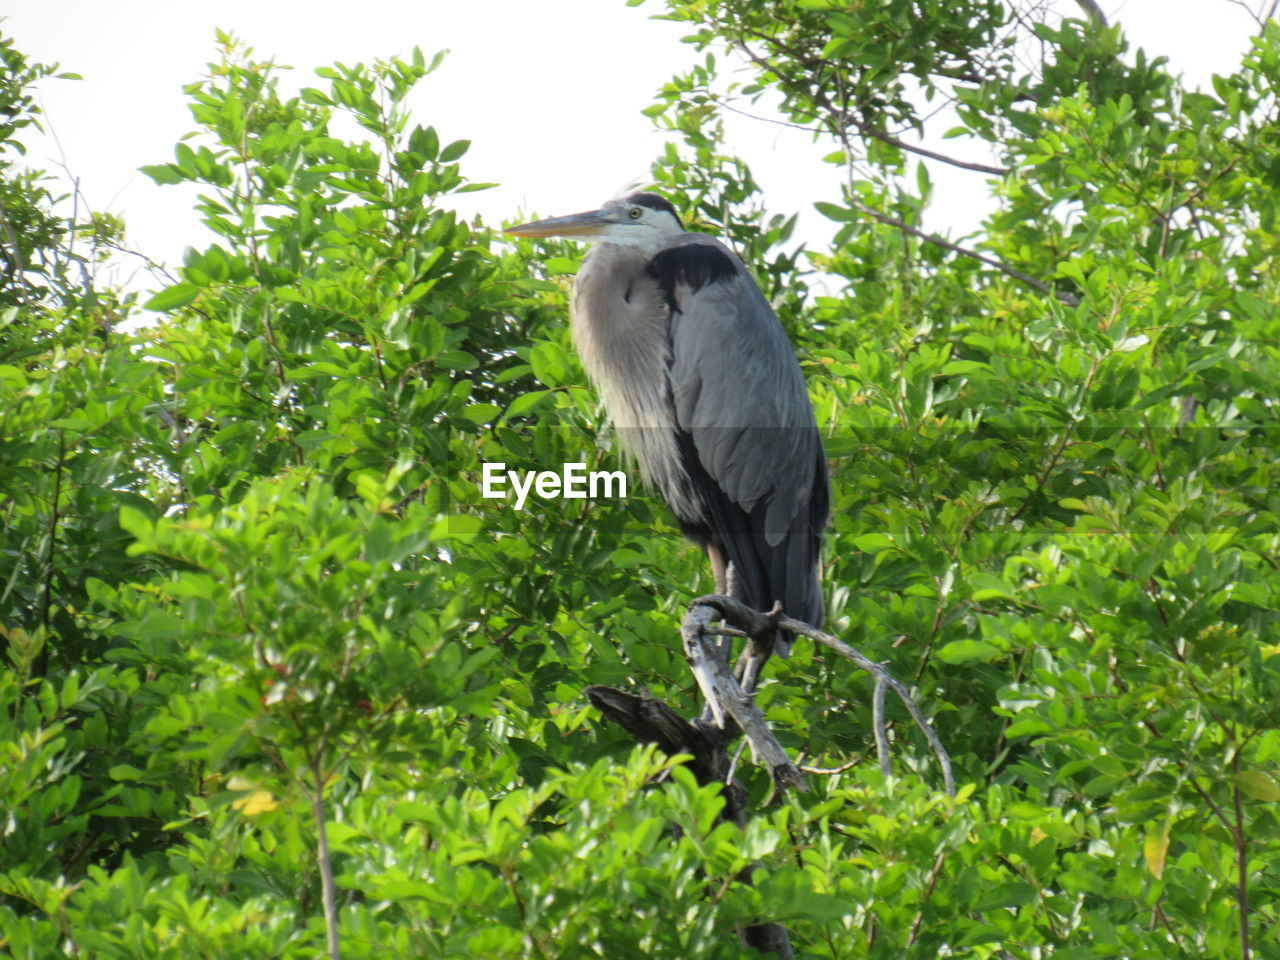 bird, animals in the wild, animal themes, one animal, animal wildlife, tree, perching, heron, no people, nature, gray heron, plant, green color, leaf, day, low angle view, growth, full length, outdoors, branch, beauty in nature